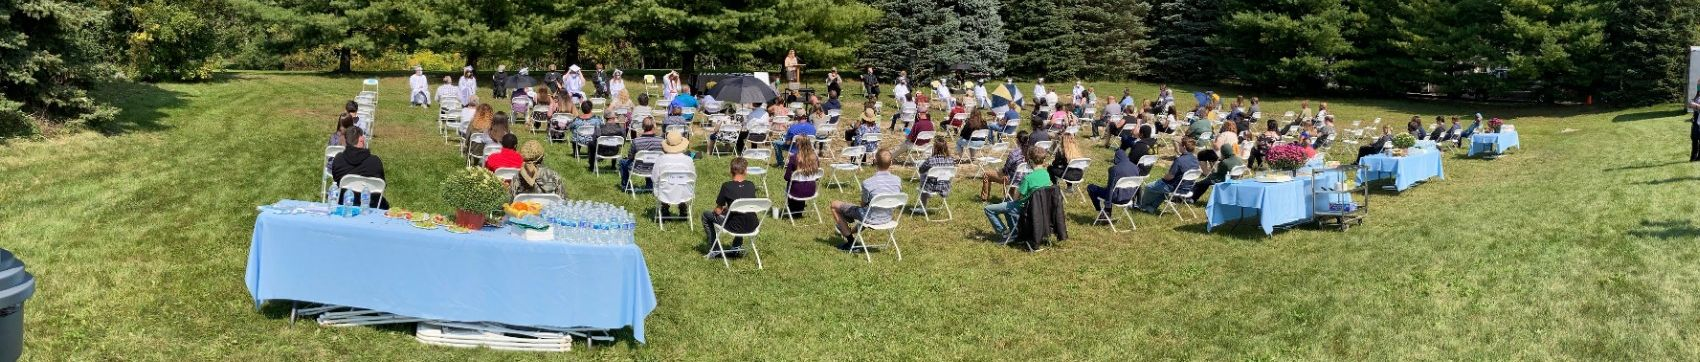 Class of 2020 Graduation Ceremony outdoors in September 2020